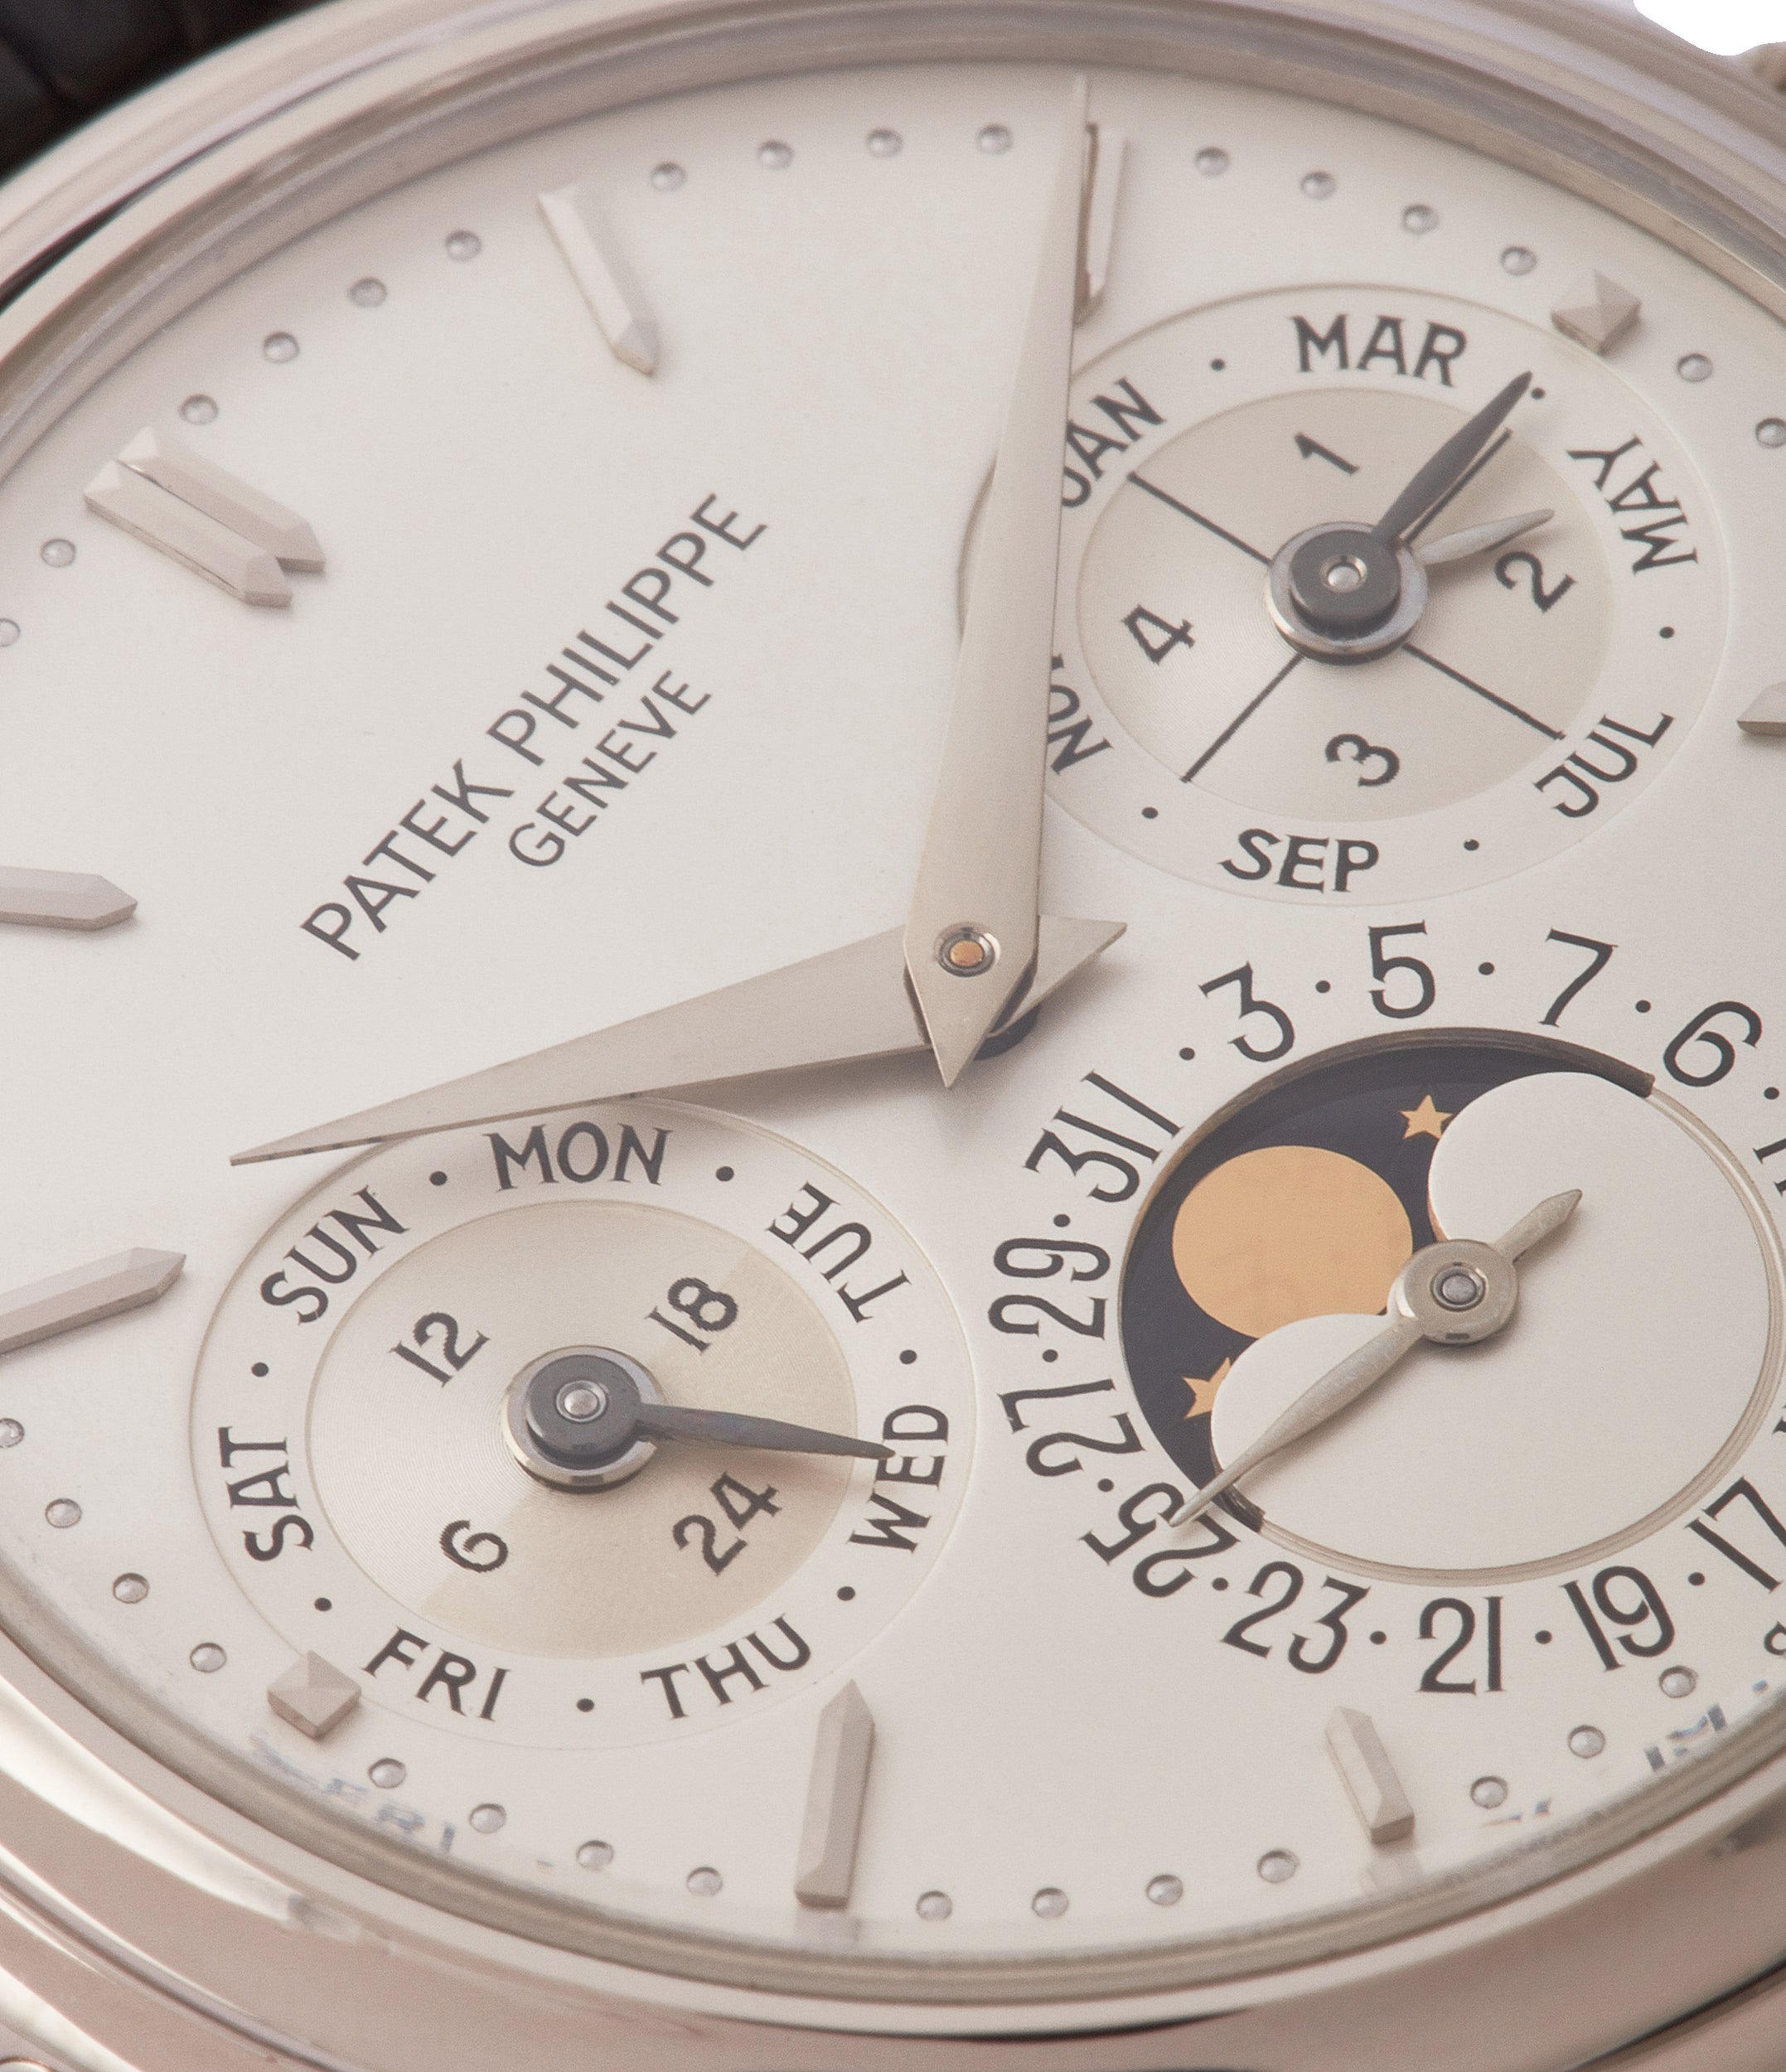 perpetual calendar moonphase Patek Philippe 3940G vintage rare watch English dial for sale online at A Collected Man London UK specialist of rare watches